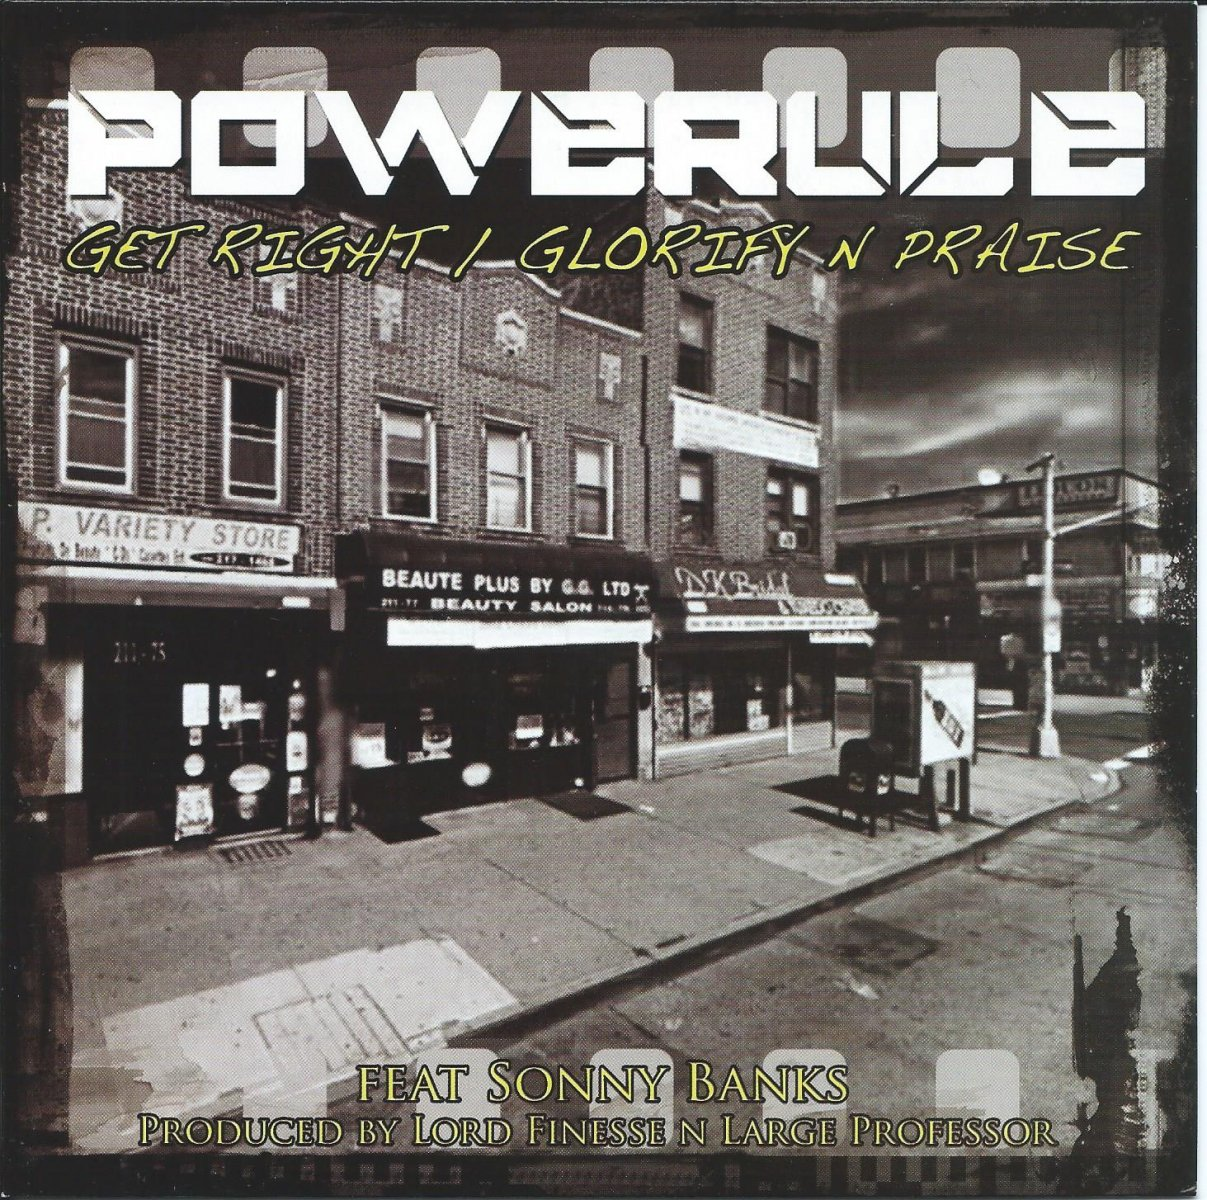 POWERULE / GLORIFY N PRAISE (PROD BY LARGE PROFESSOR) / GET RIGHT (PROD BY LORD FINESSE) (7